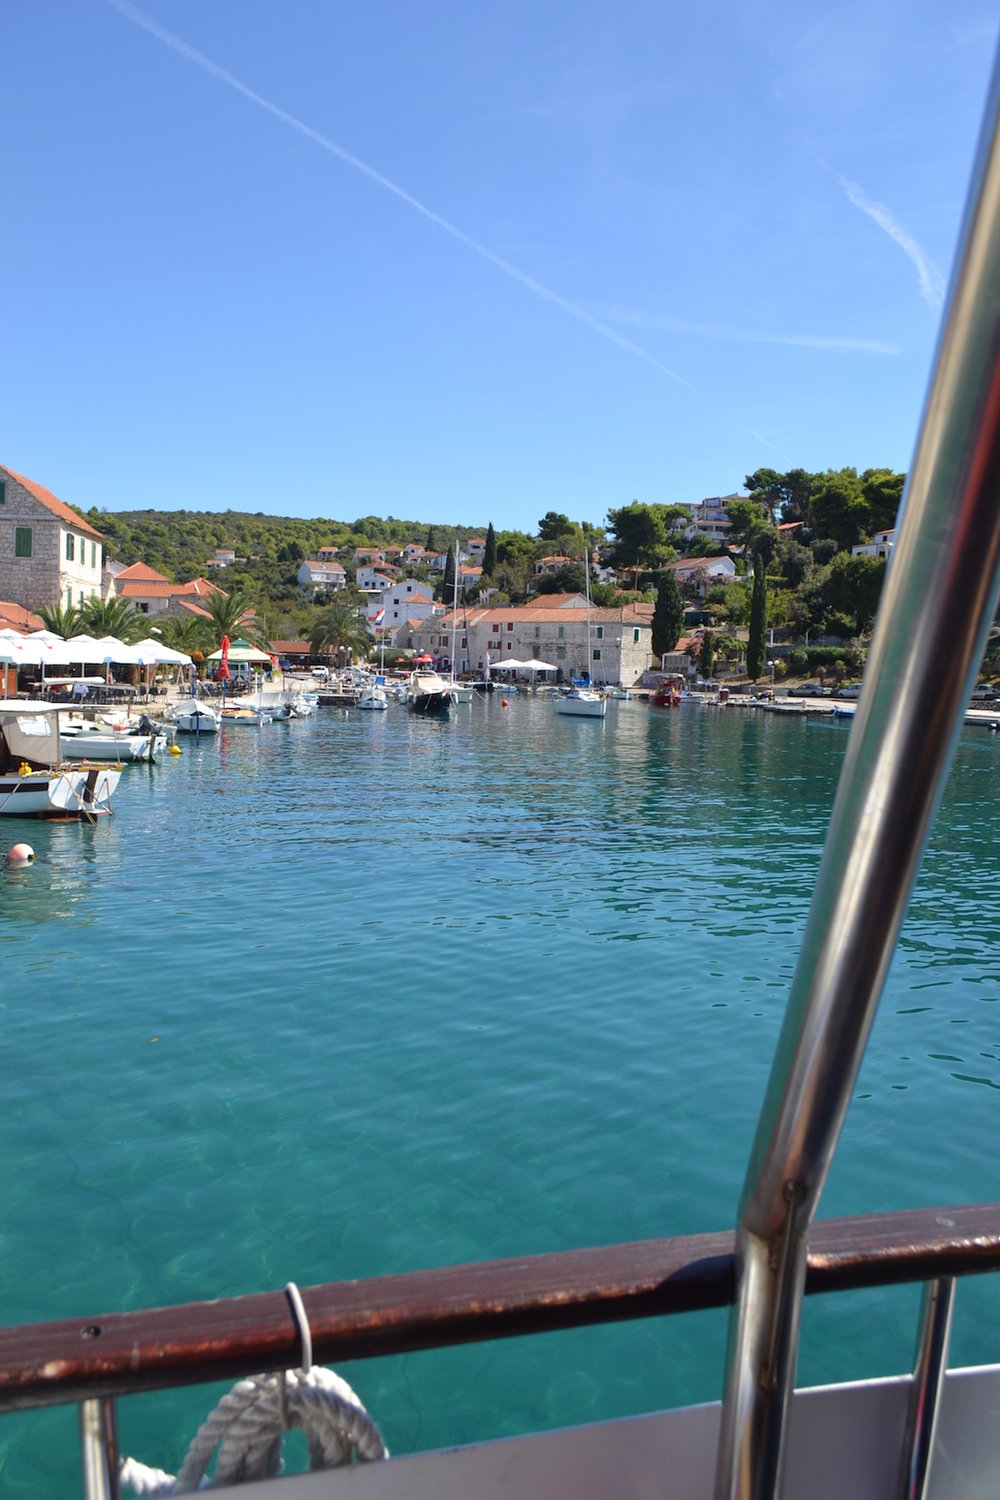 Boating around the Croatian islands